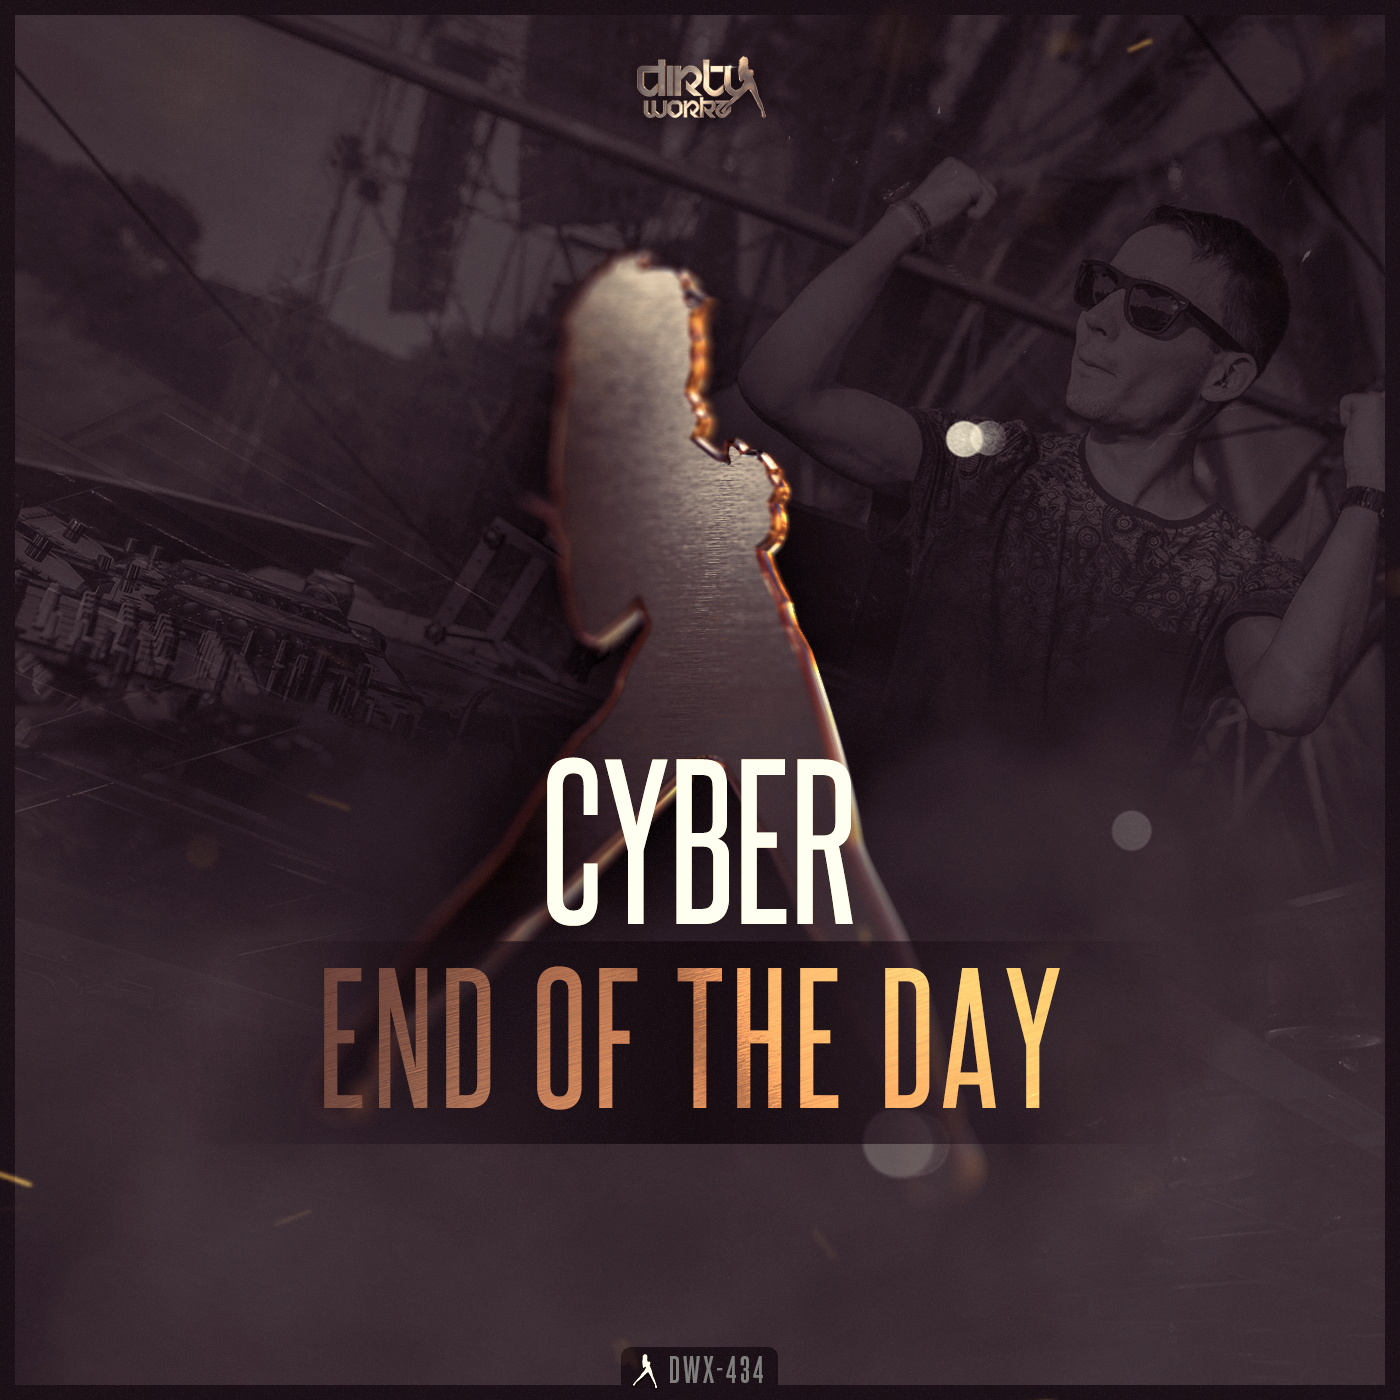 Cyber - End Of The Day [DIRTY WORKZ] DWX434